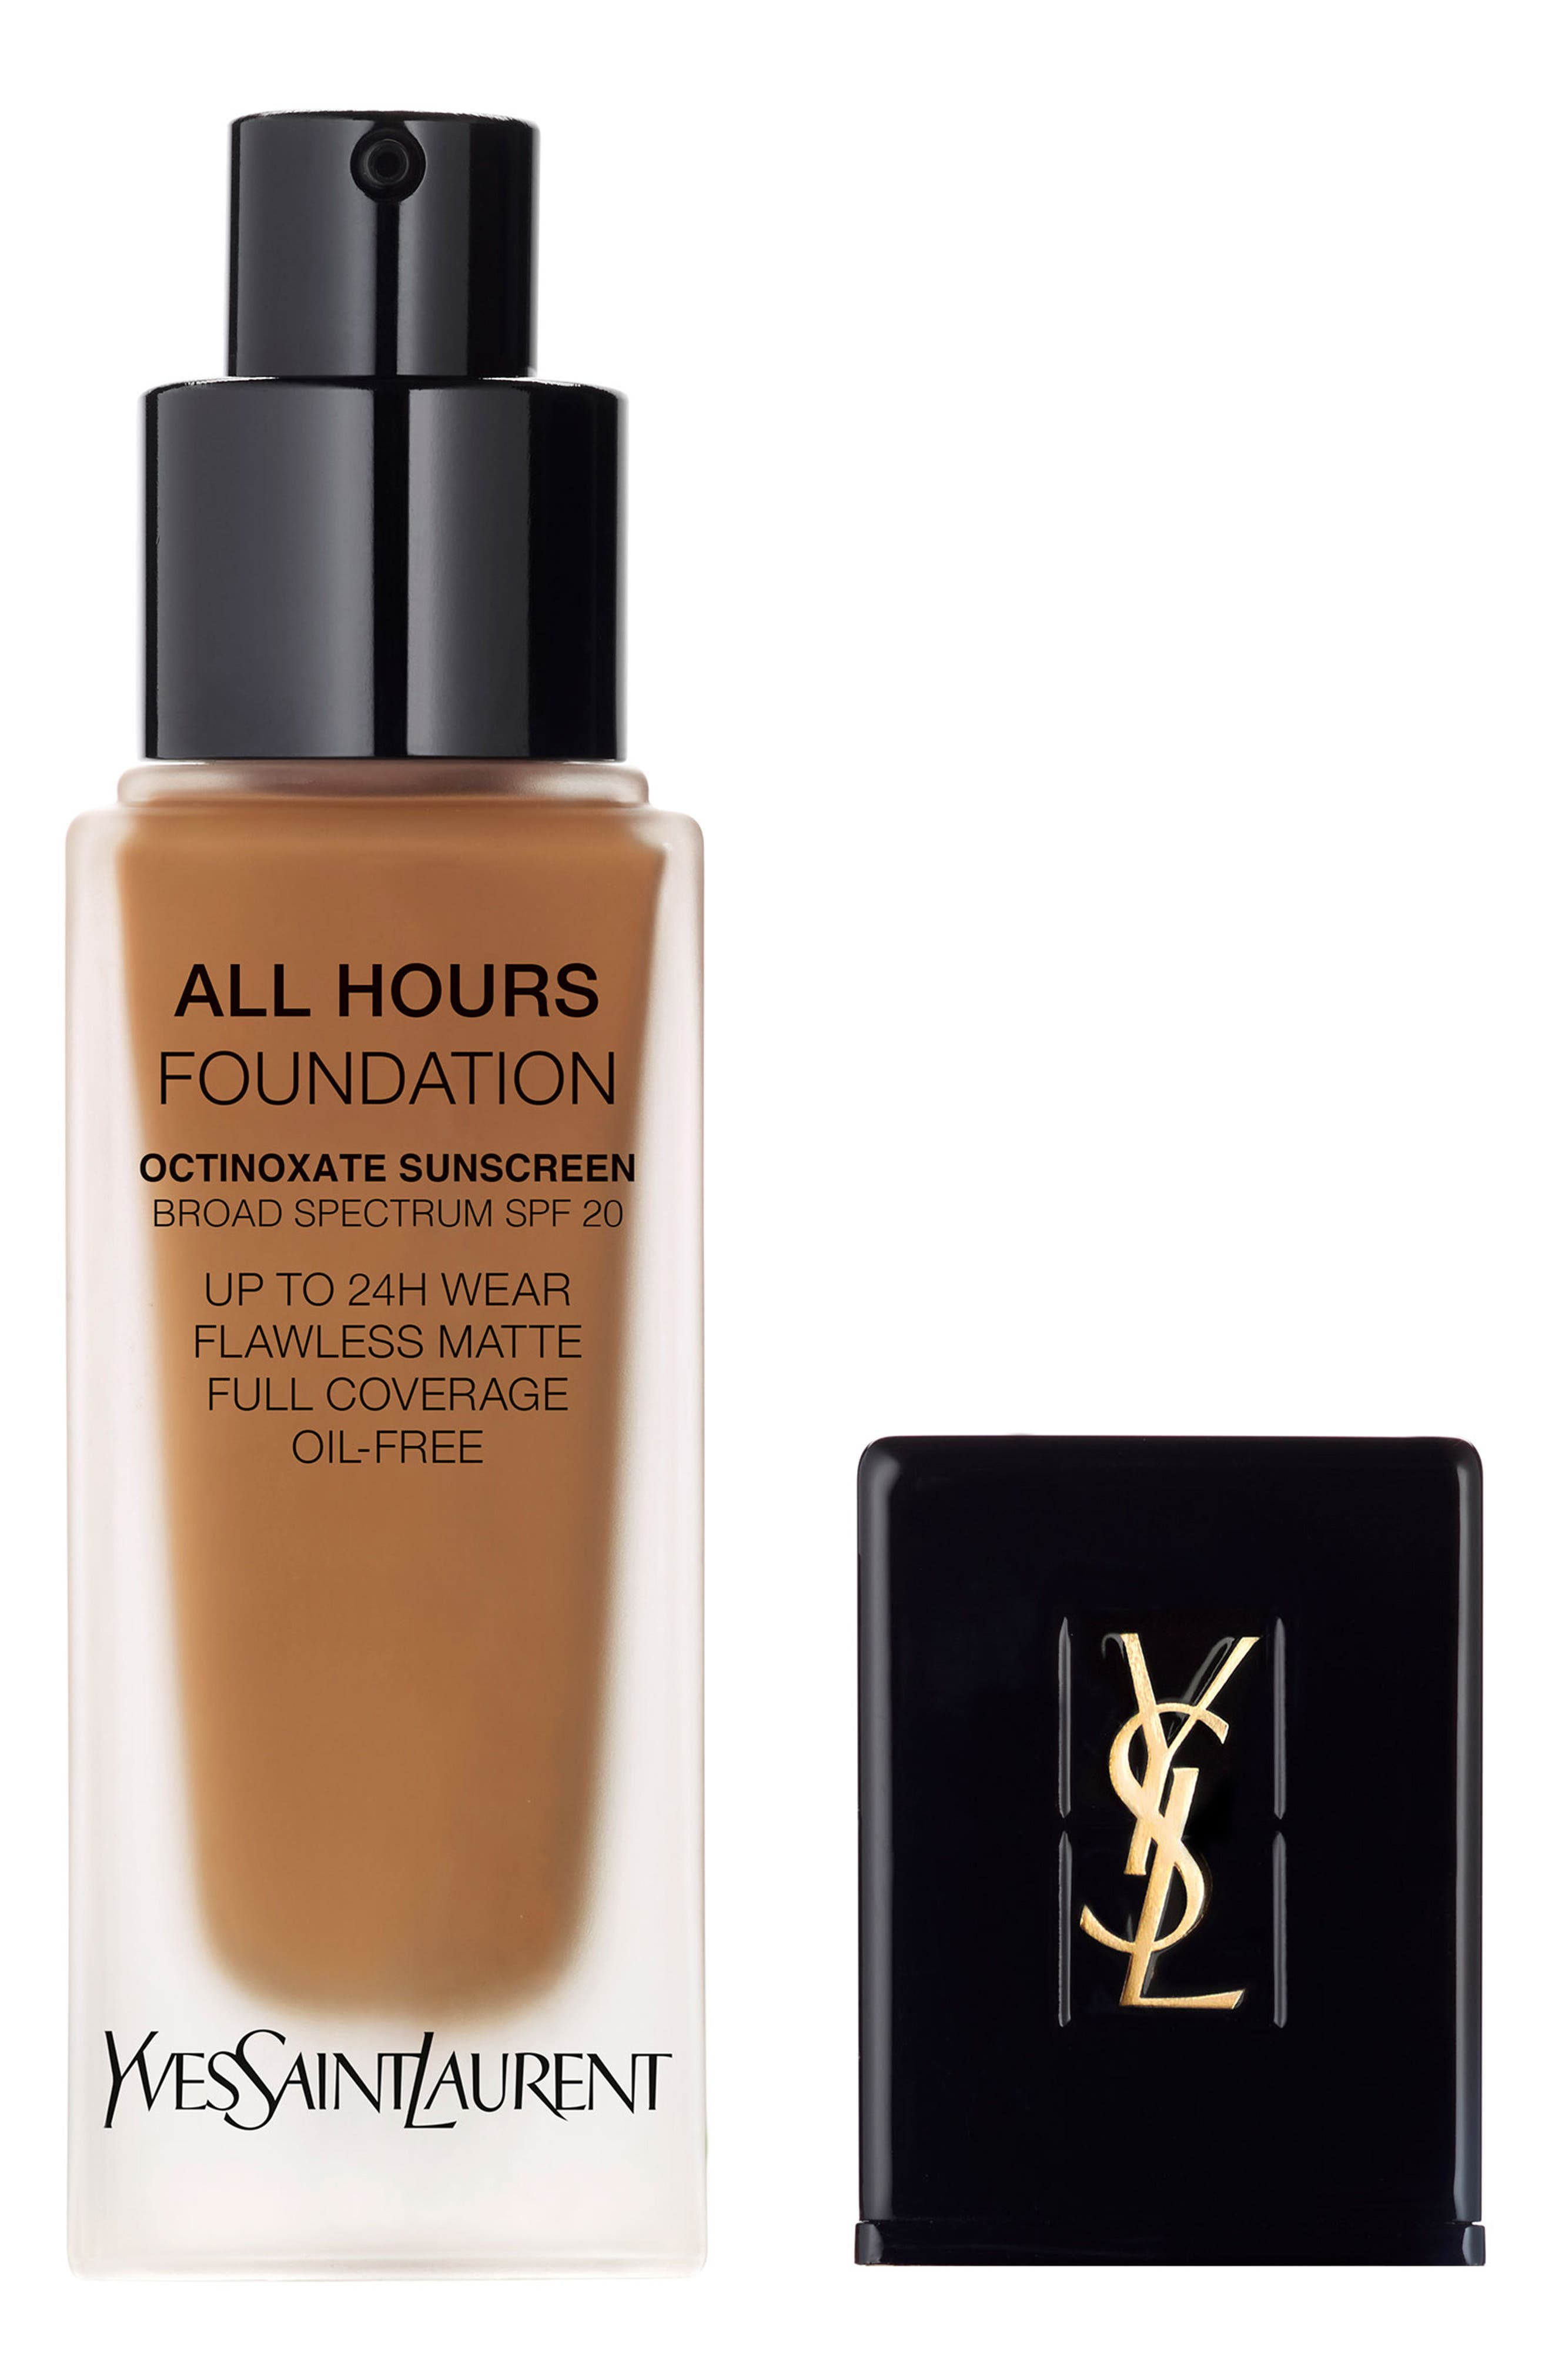 Yves Saint Laurent All Hours Full Coverage Matte Foundation Spf 20 - B80 Chocolate